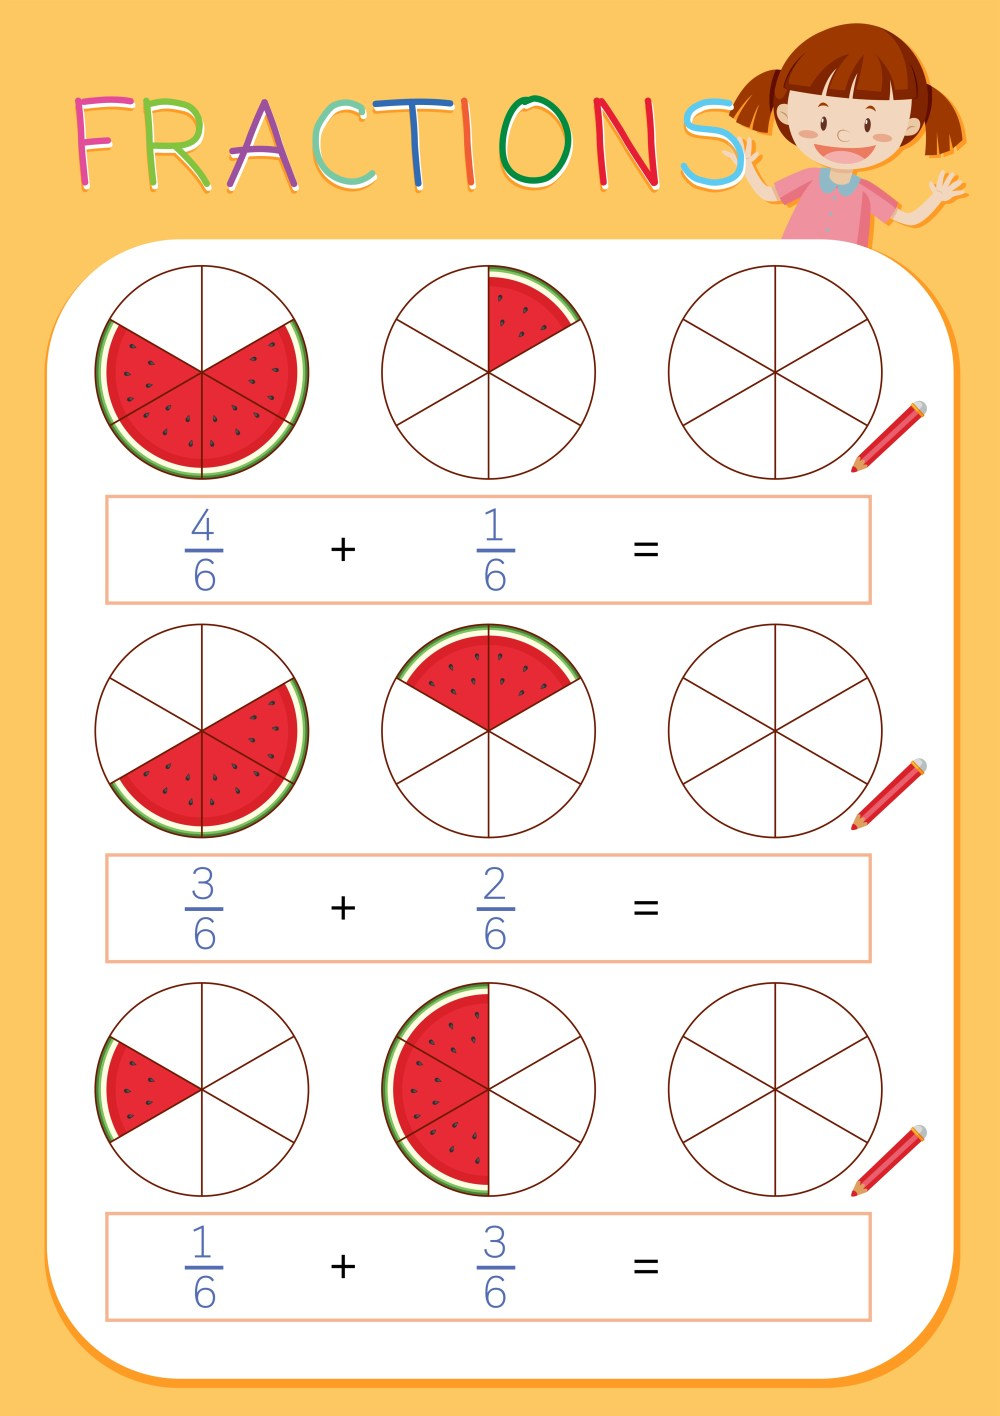 medium resolution of A math fractions worksheet - Download Free Vectors